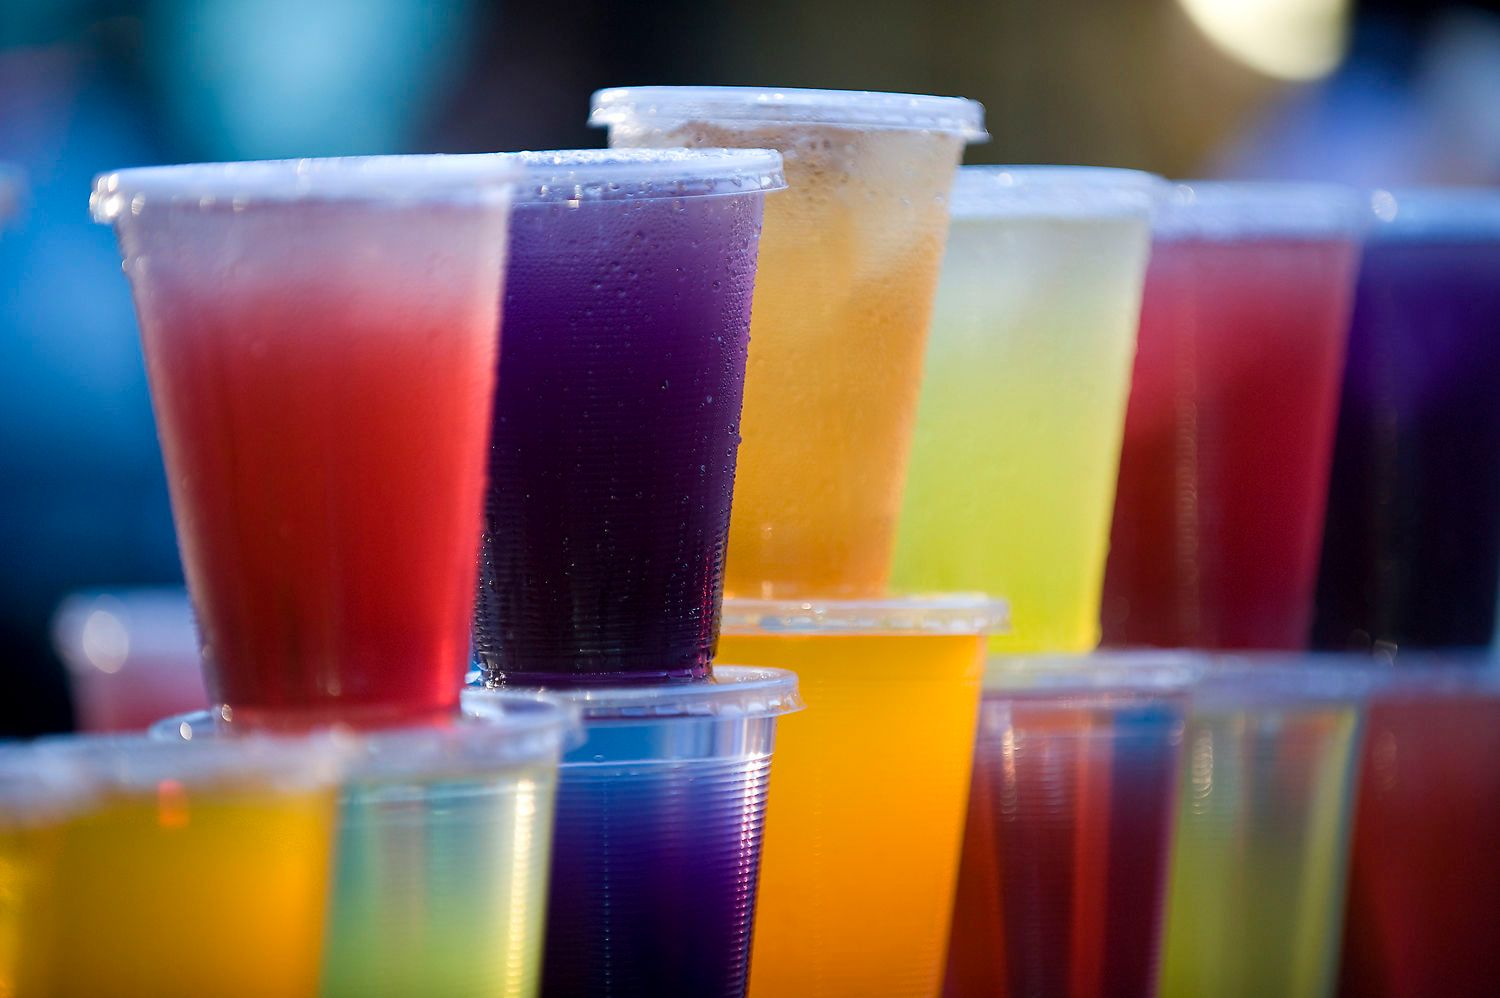 Colored Fruit Drinks in Plastic Cups